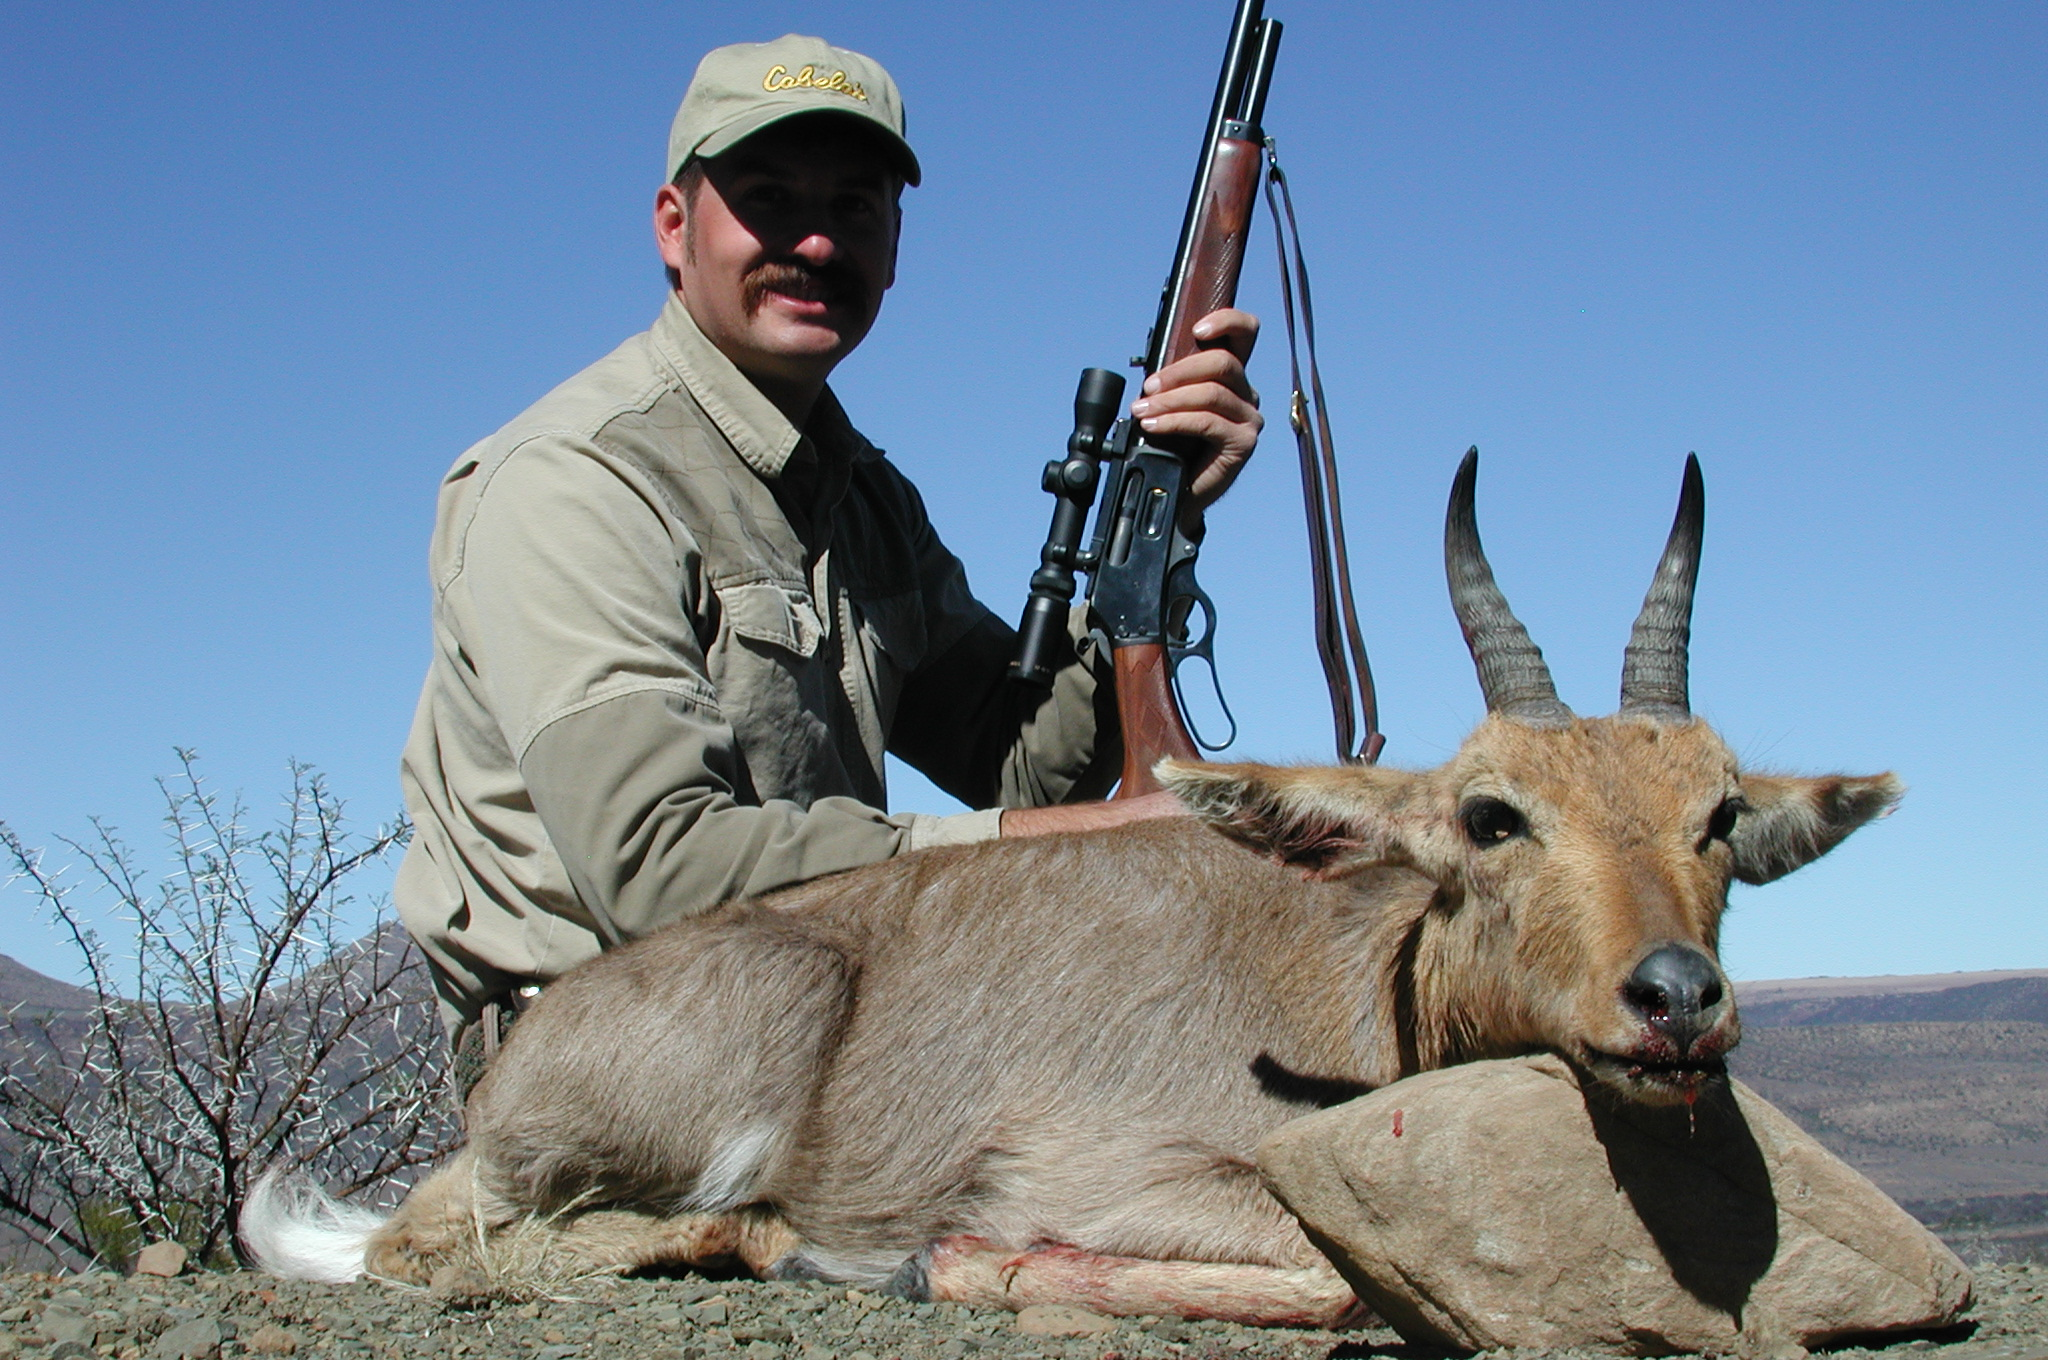 Frank_cole_reedbuck_consultant_the_draw.